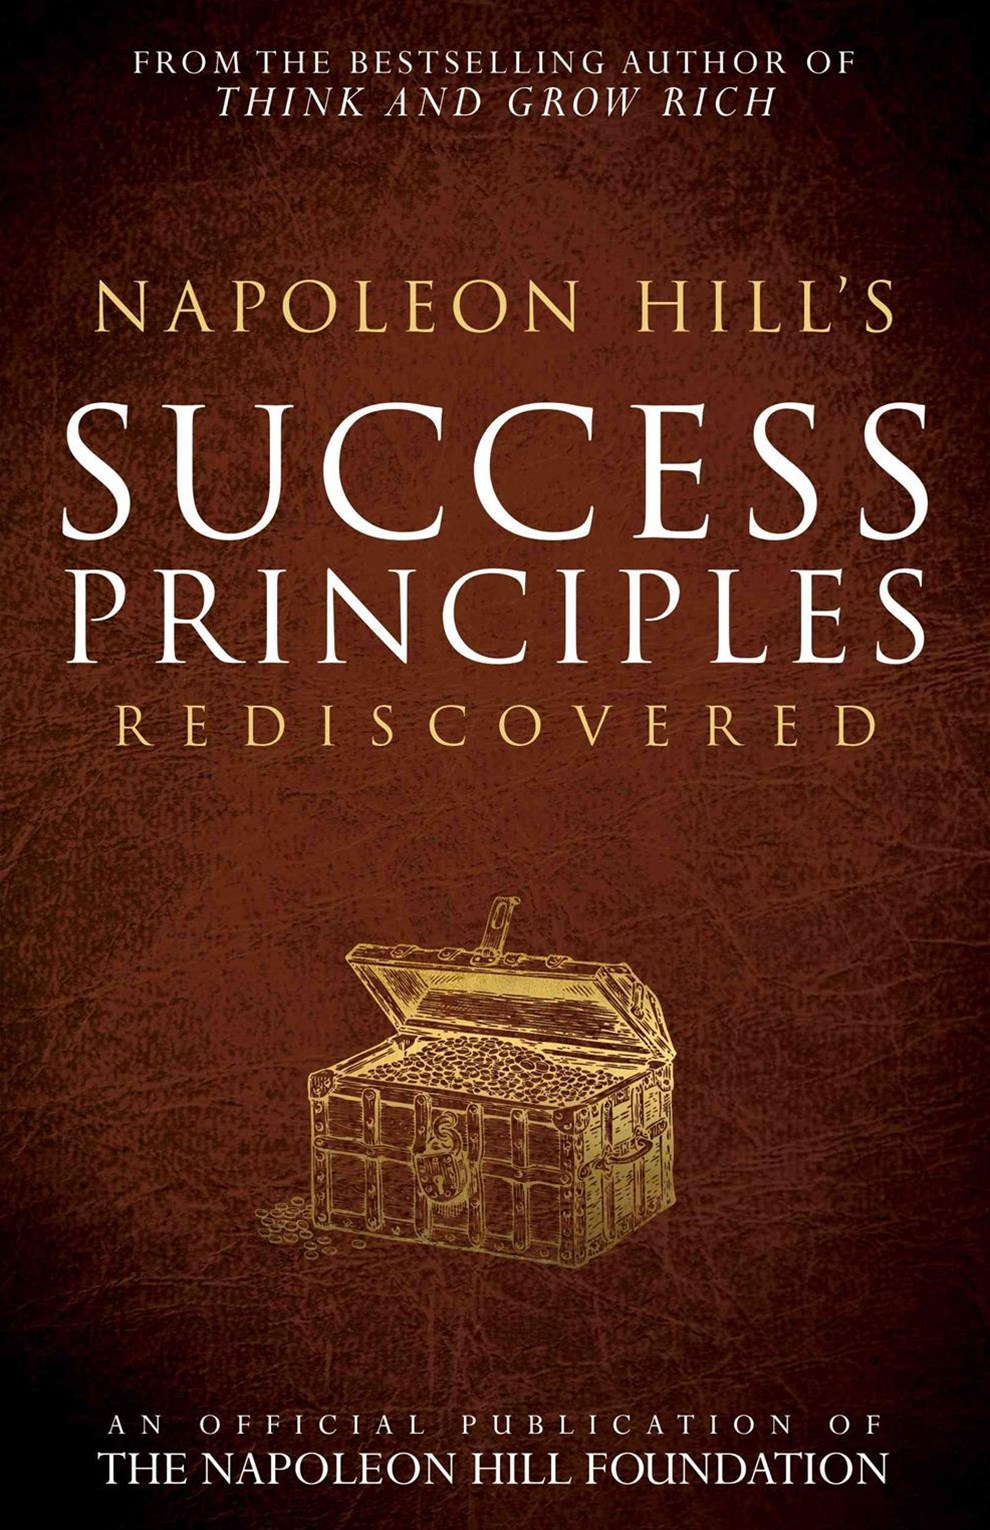 Napoleon Hill's Yesterday Working Title